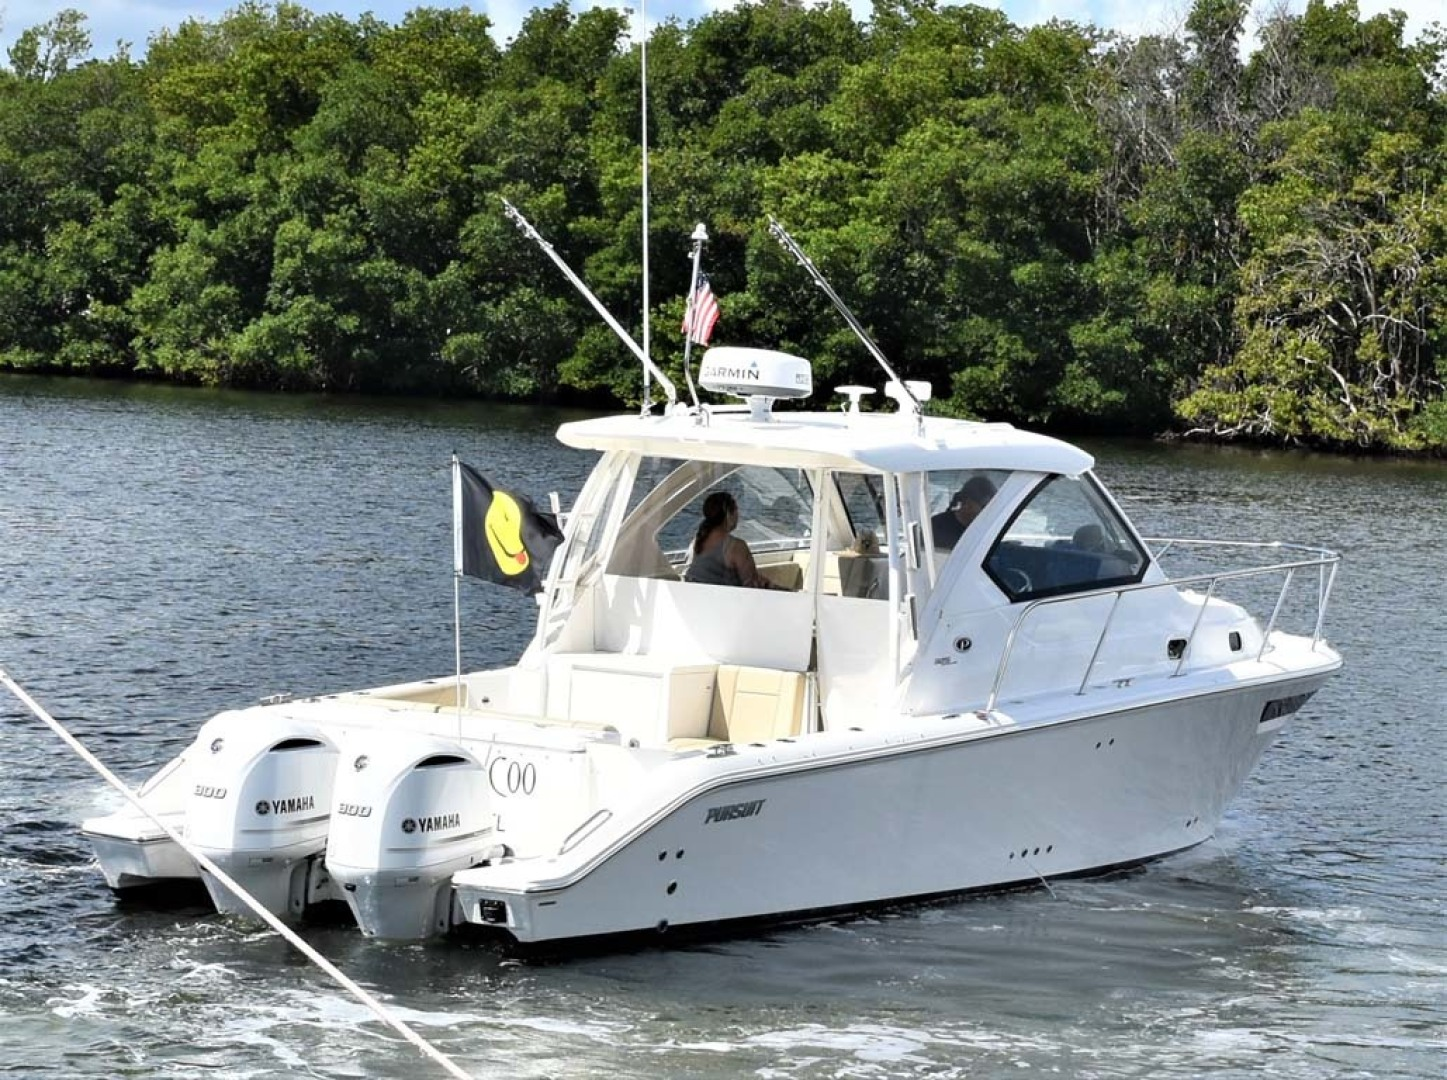 Pursuit-325 Offshore 2020-Coo Coo Miami-Florida-United States-Starboard Stern View-1475316 | Thumbnail